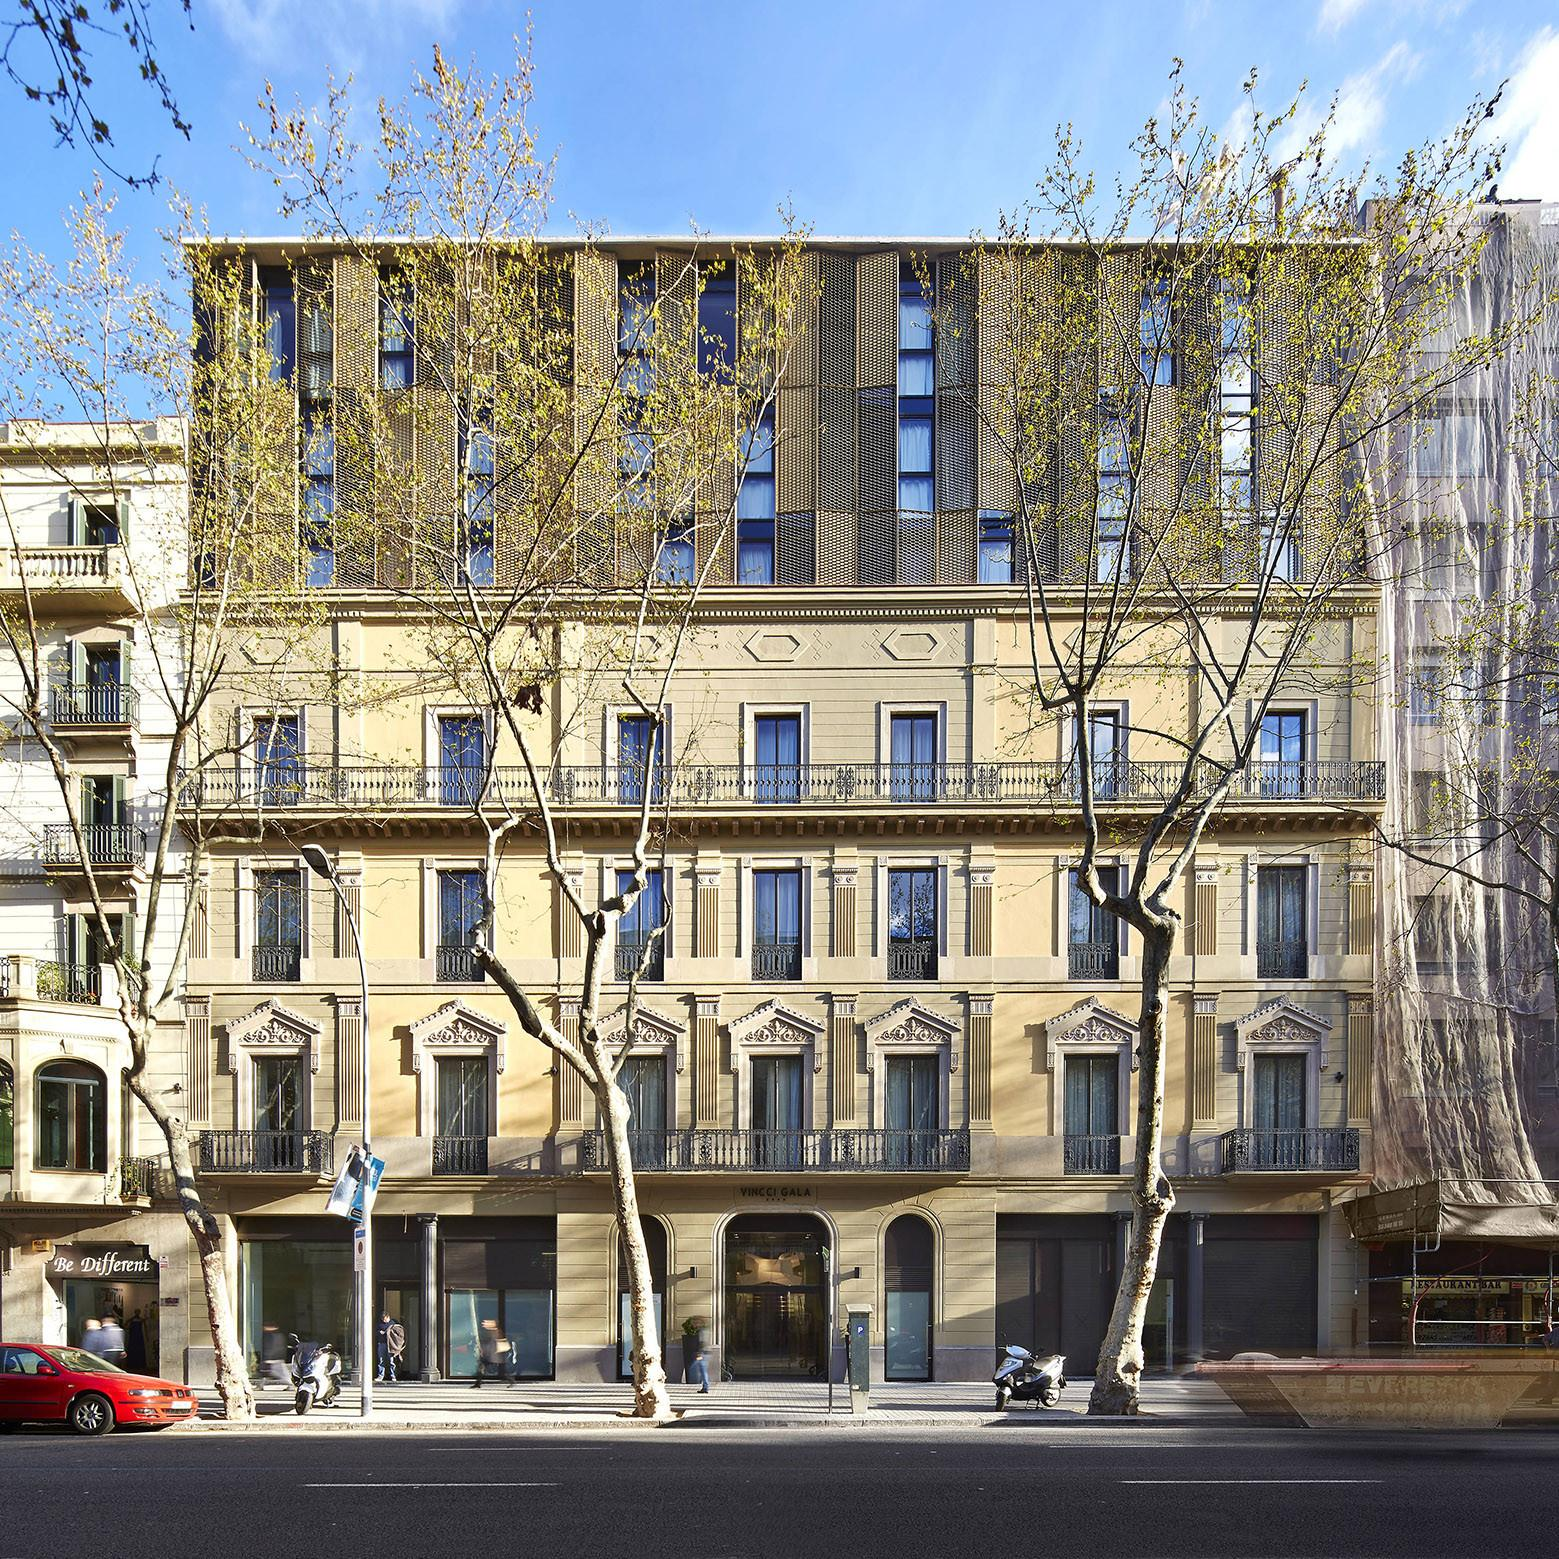 The Vincci Gala Hotel In Barcelona Archiscene Your